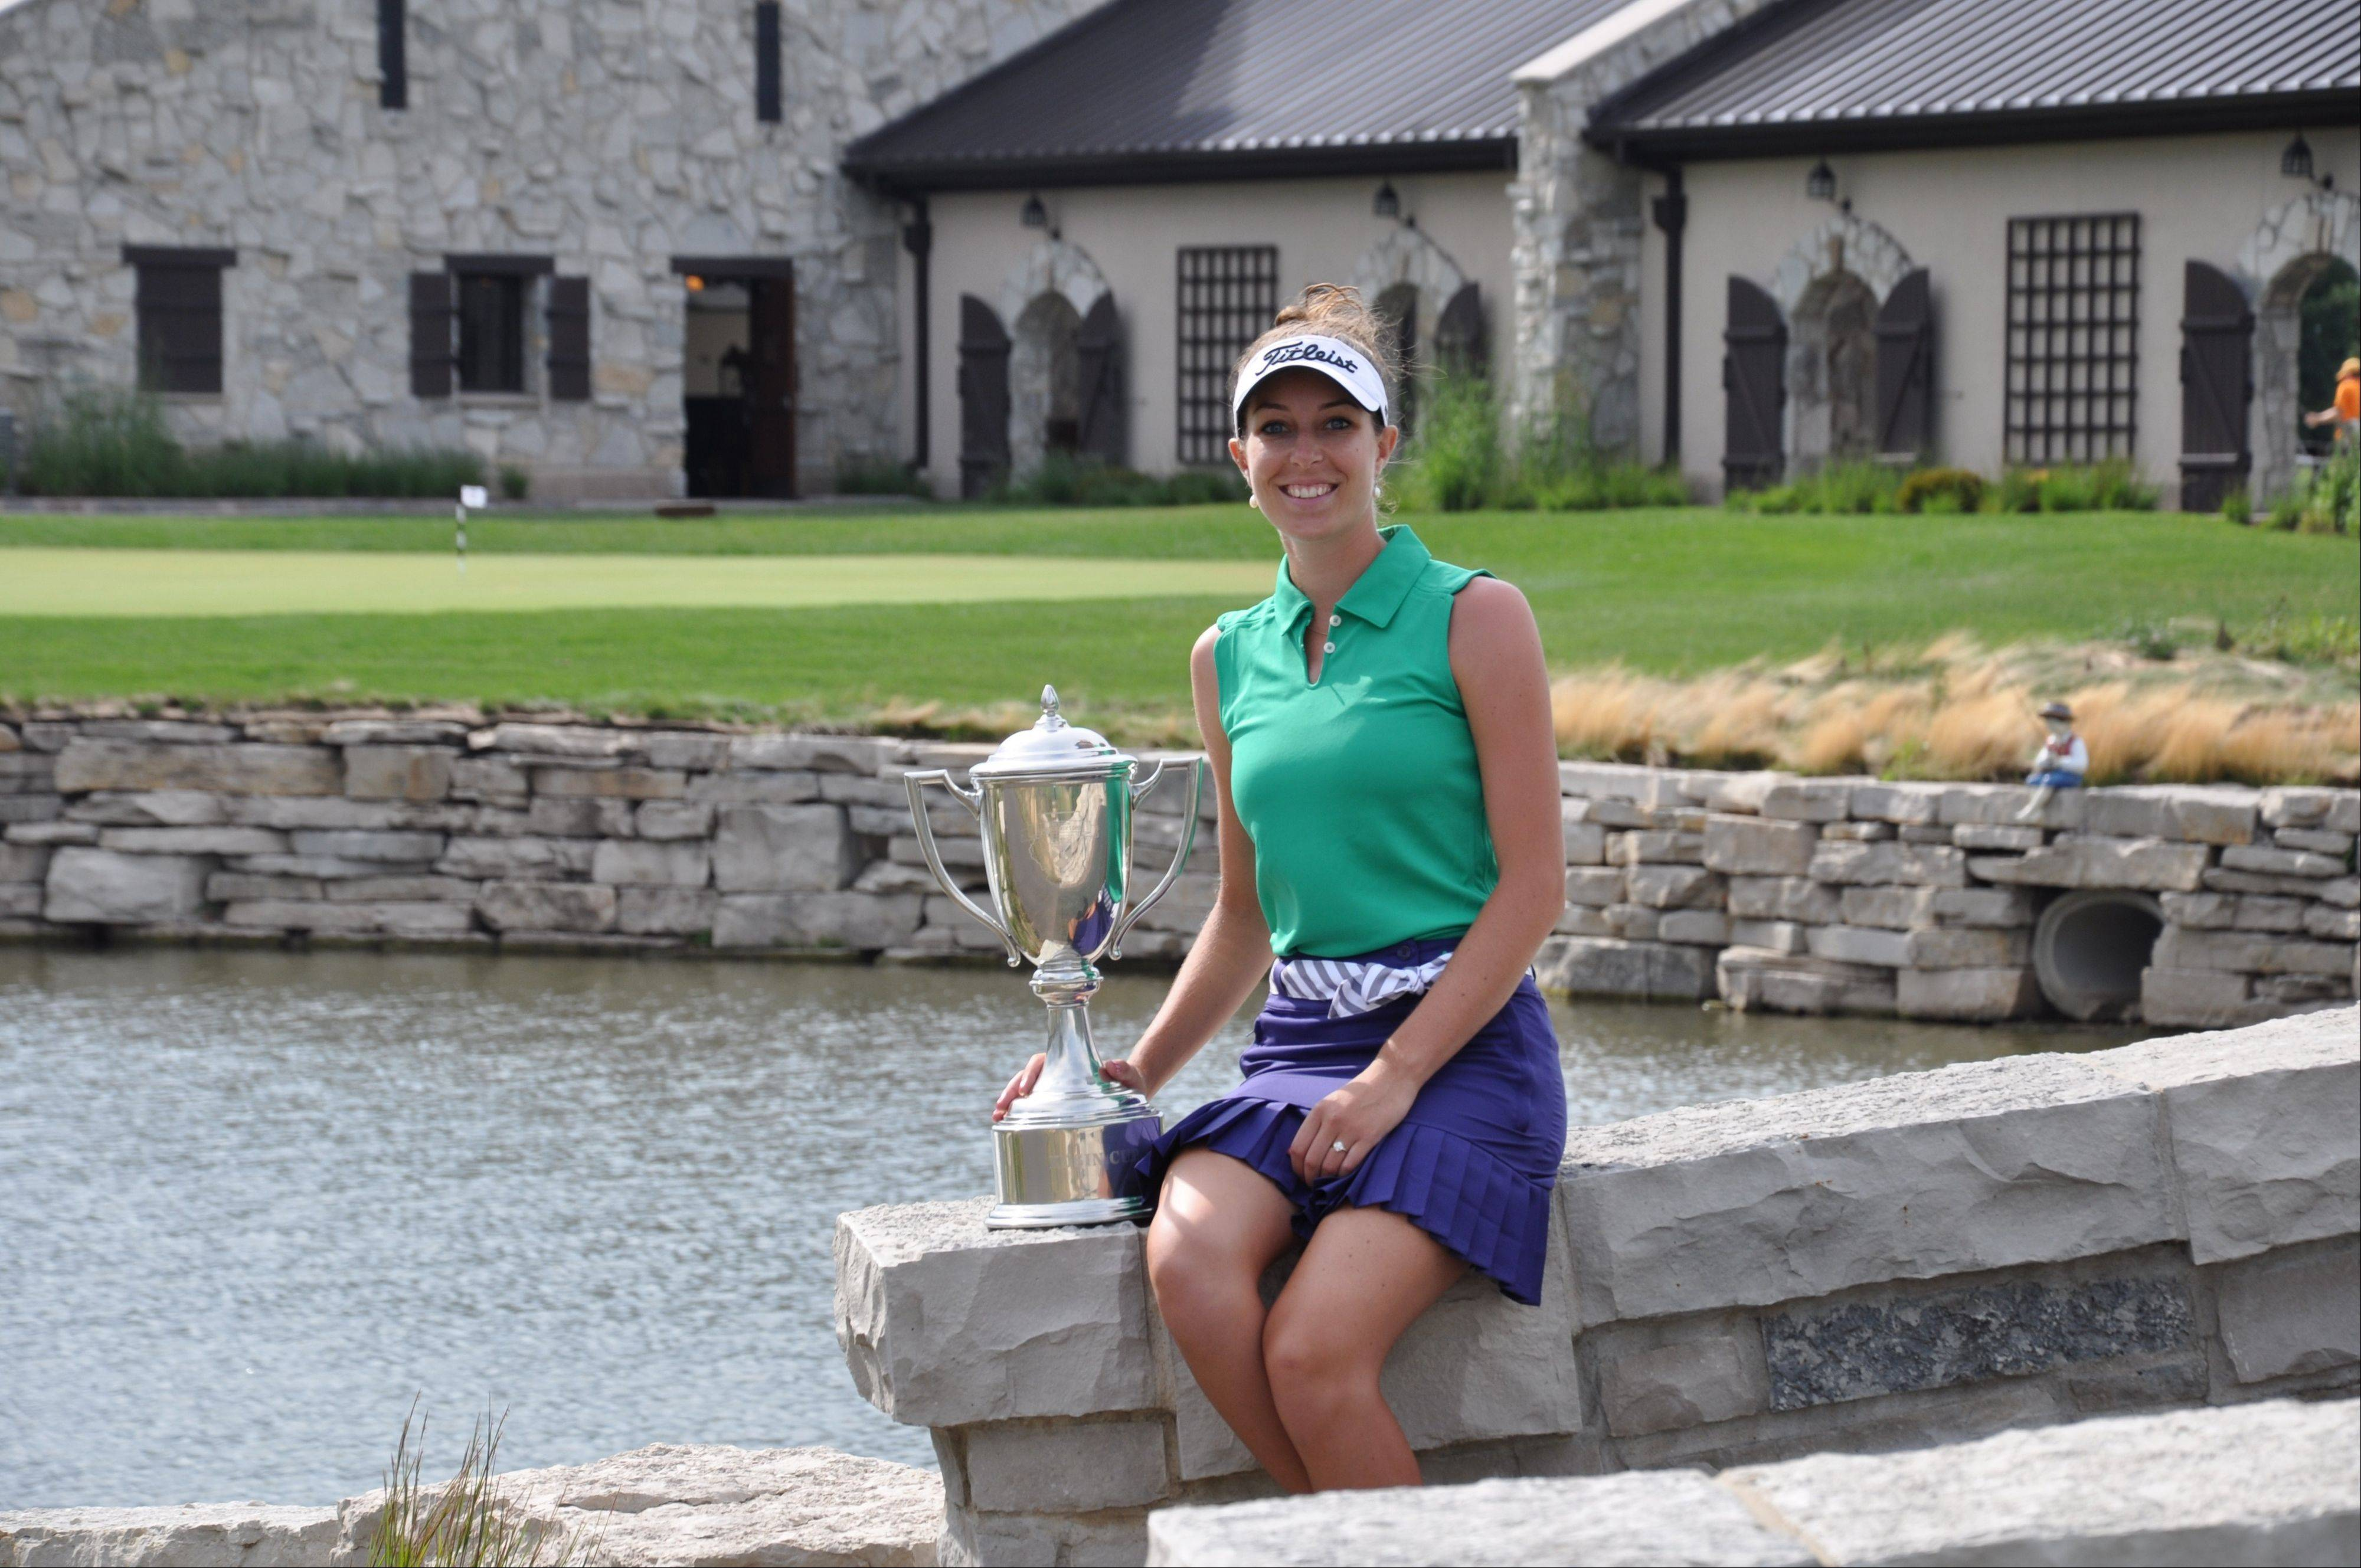 Elise Swartout, a Michigan pro, earned the 2013 Phil Kosin Illinois Women's Open title at Mistwood Golf Club with a 3-under 69 on Friday.